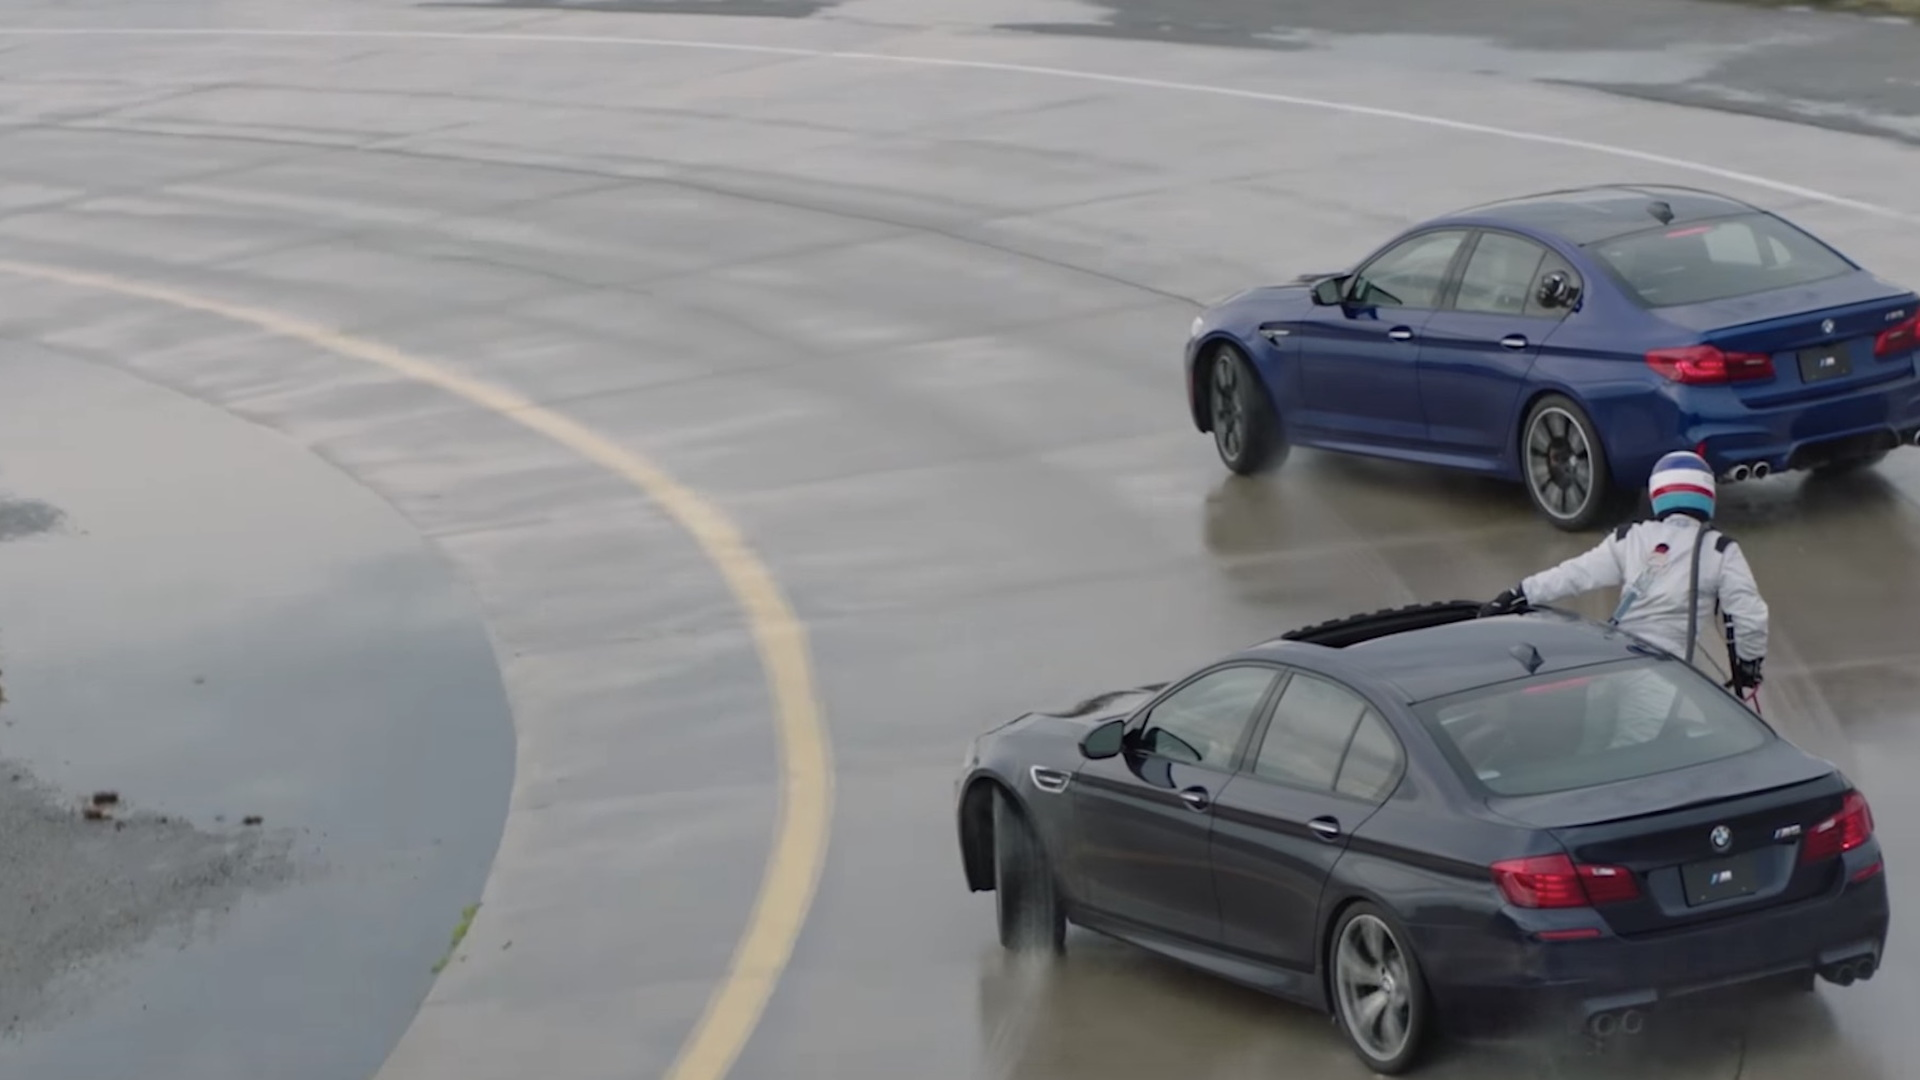 BMW car-to-car refueling during longest vehicle drift world record attempt